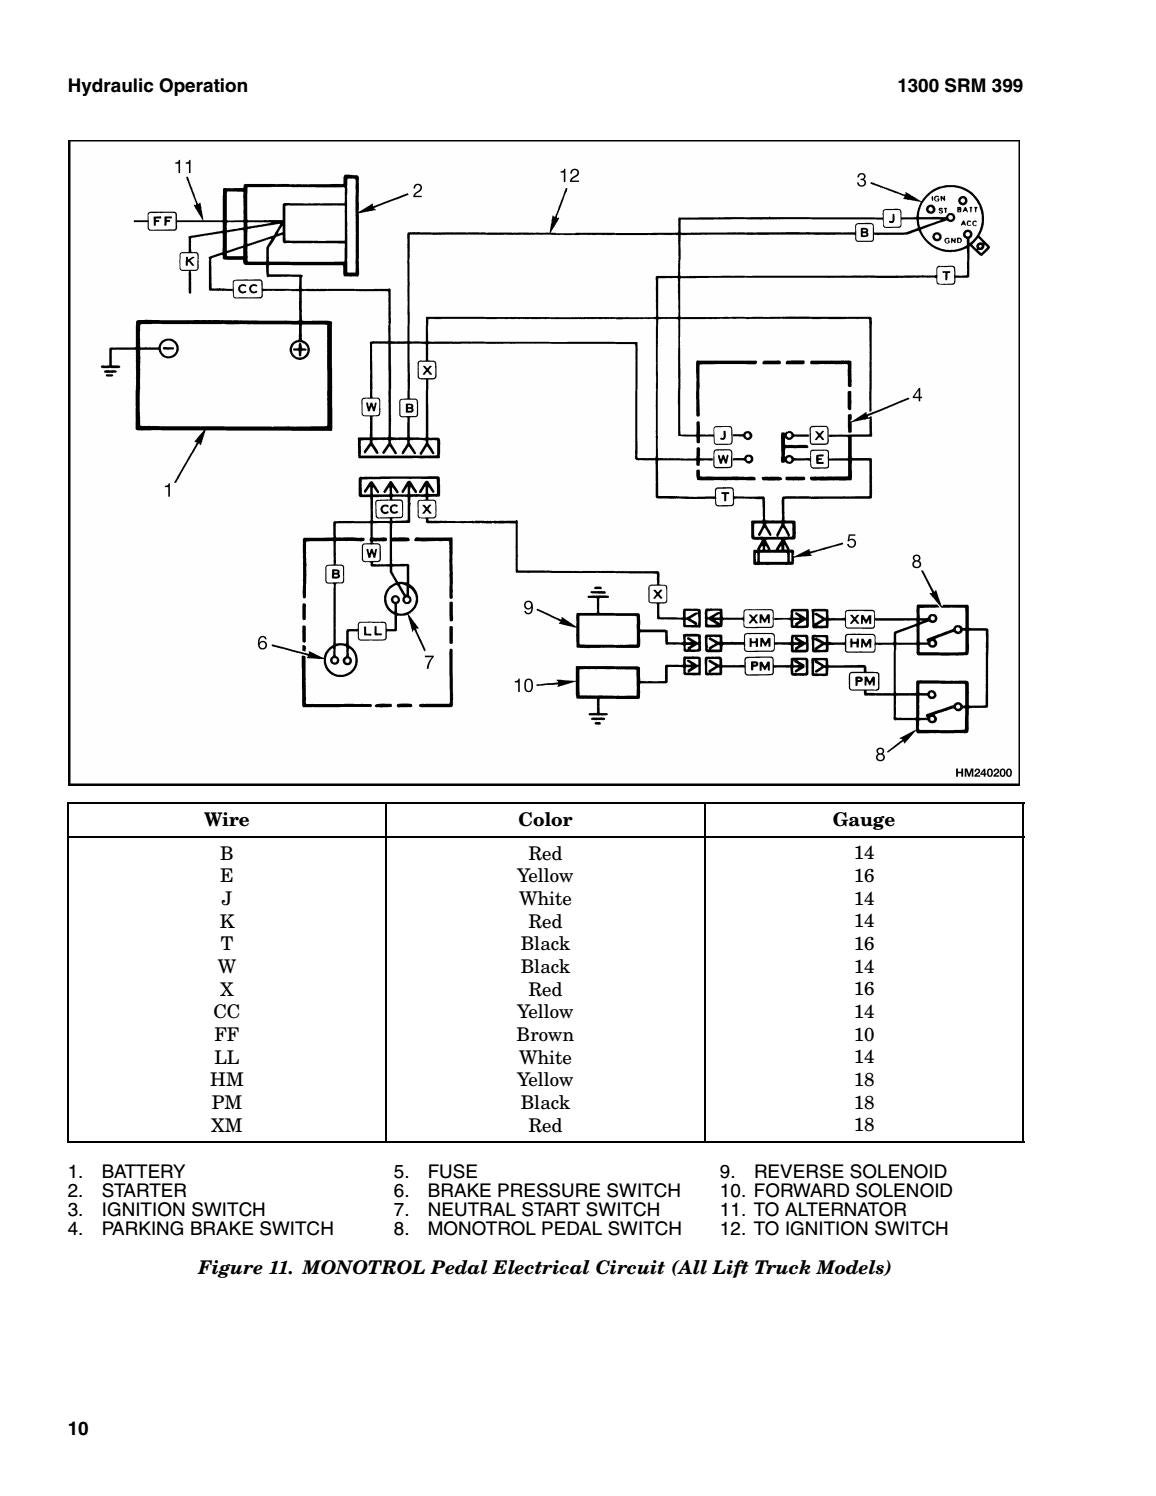 Hyster Ignition Wiring Diagram - wiring diagram series-endure -  series-endure.parafarmacialofaro.it | Hyster H80xl Wiring Diagram |  | parafarmacialofaro.it